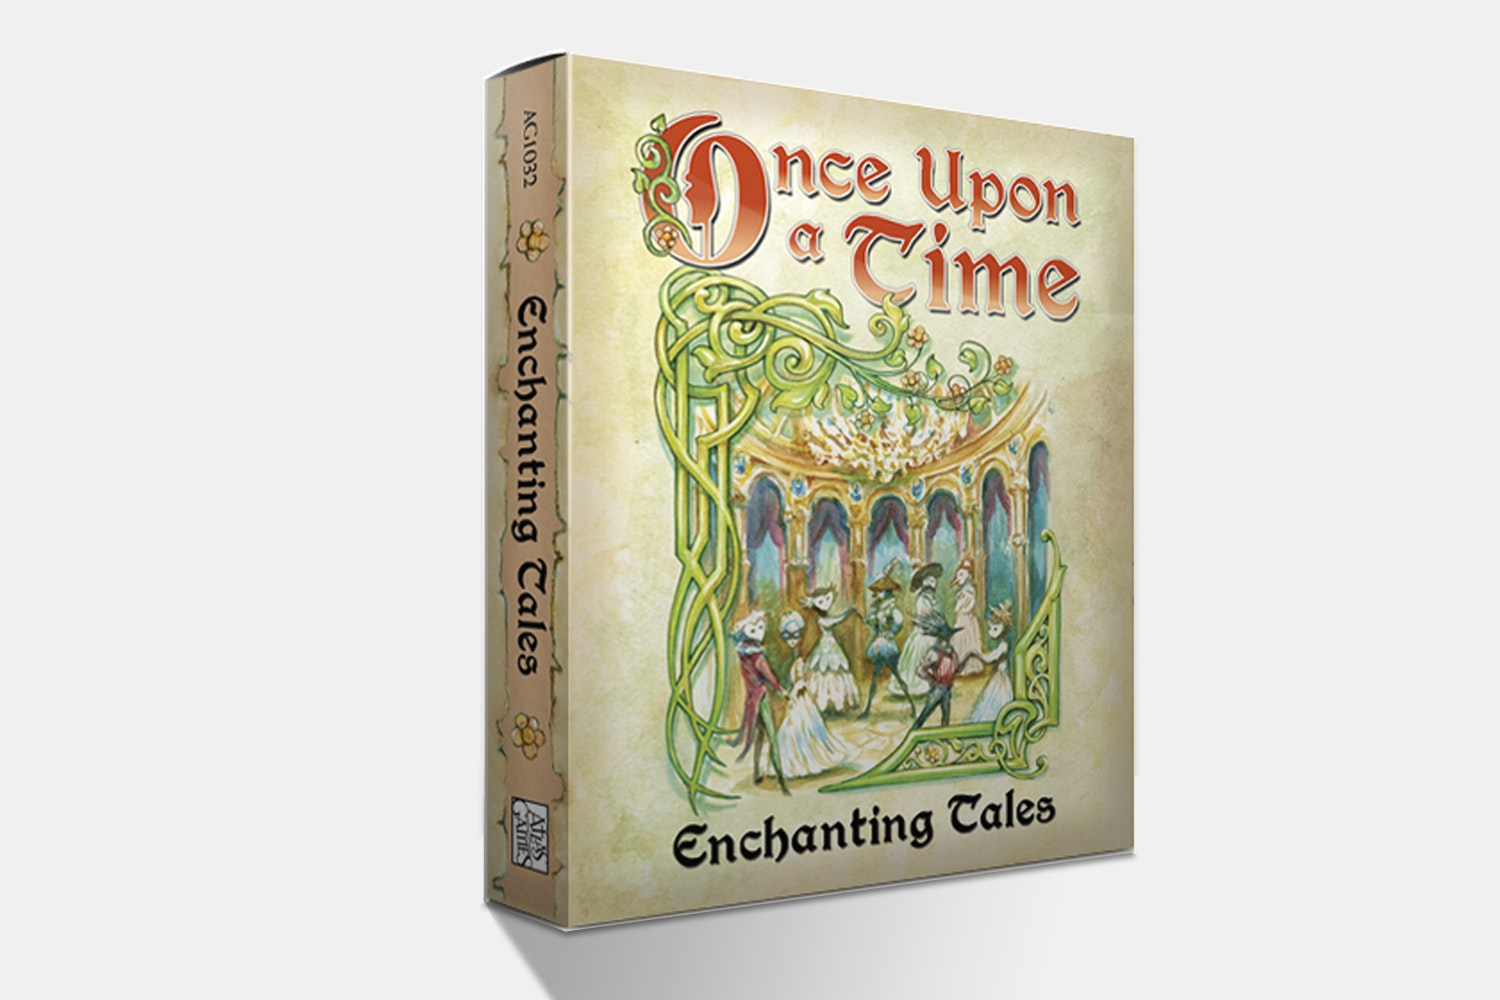 Once Upon a Time (Animal Tales)